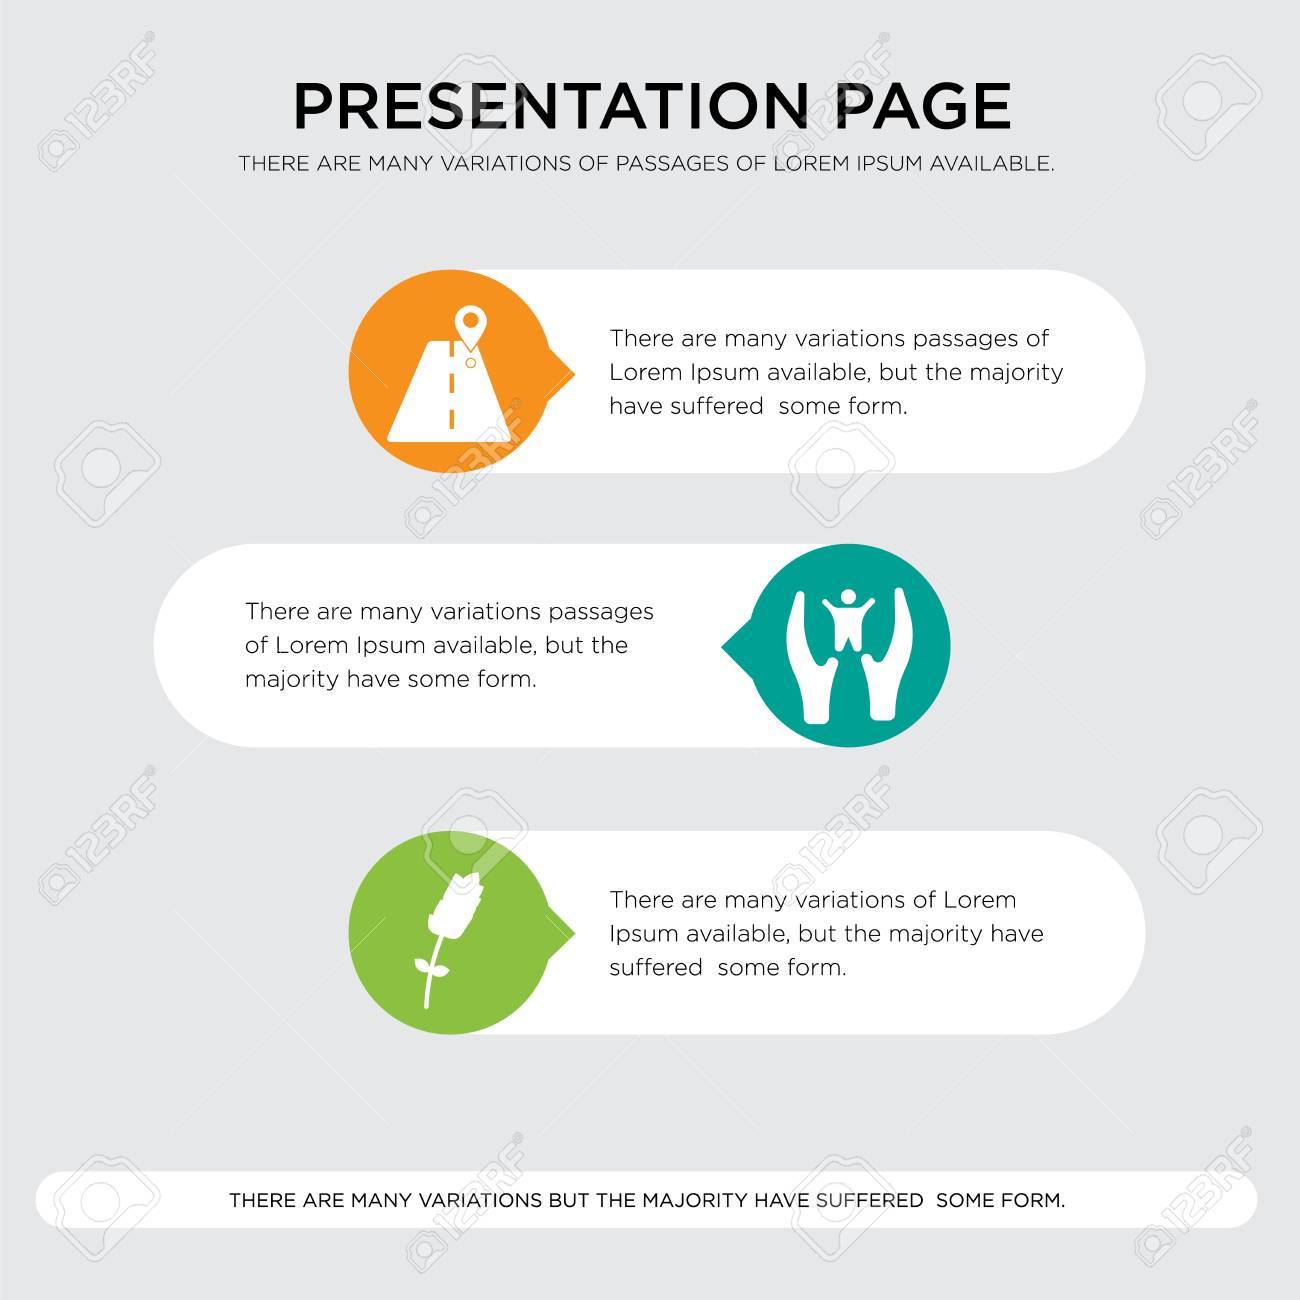 roadmap presentation design template in orange green yellow